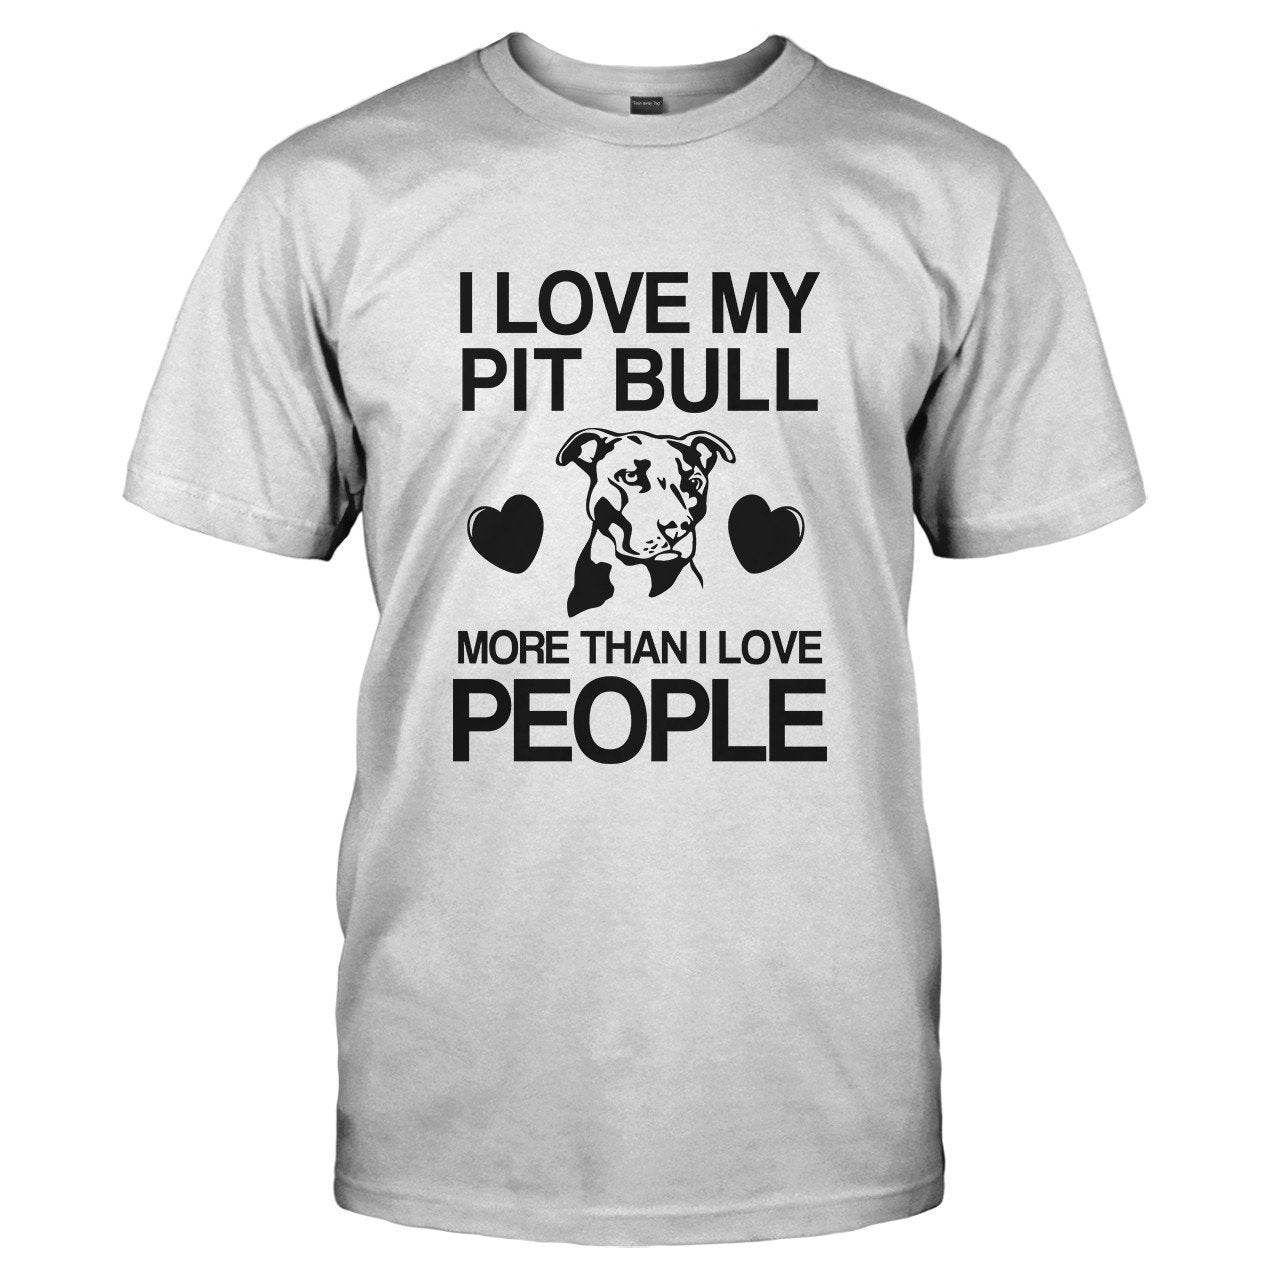 I Love My My Pit Bull More Than I Love People - T Shirt